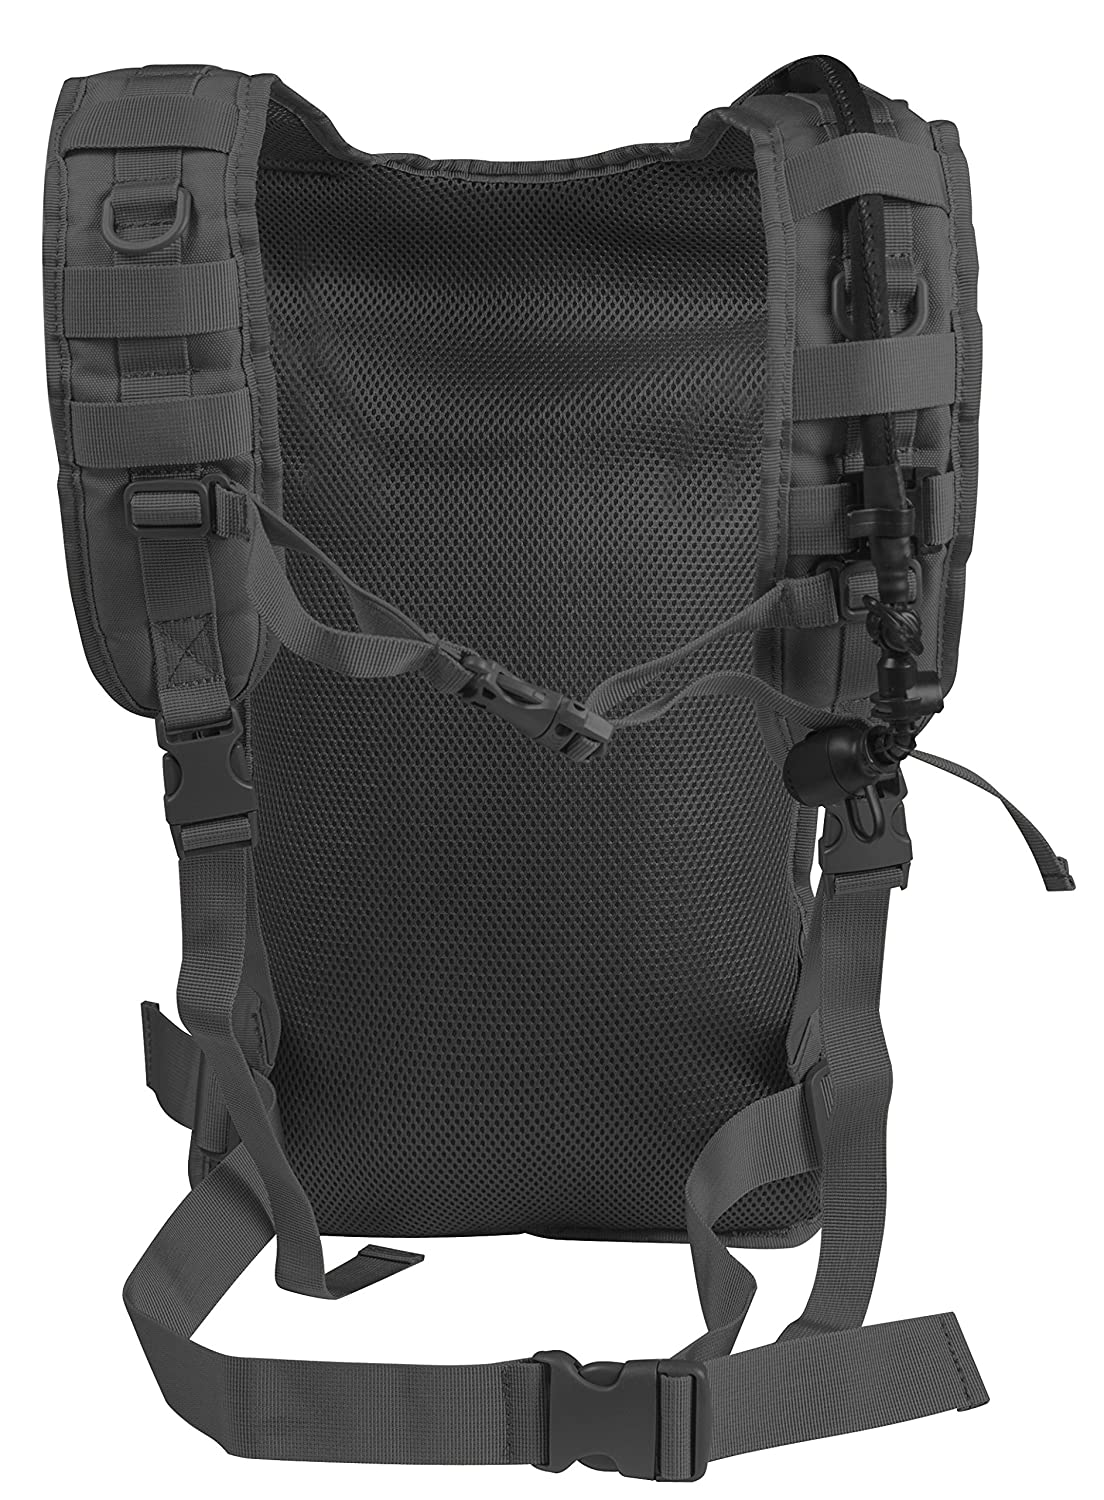 not included Seibertron Tactical Molle Hydration Carrier Pack Backpack Great for Outdoor Sports of Running Hiking Camping Cycling Motorcycle Fit for Seibertron 2L or 2.5L water bladder